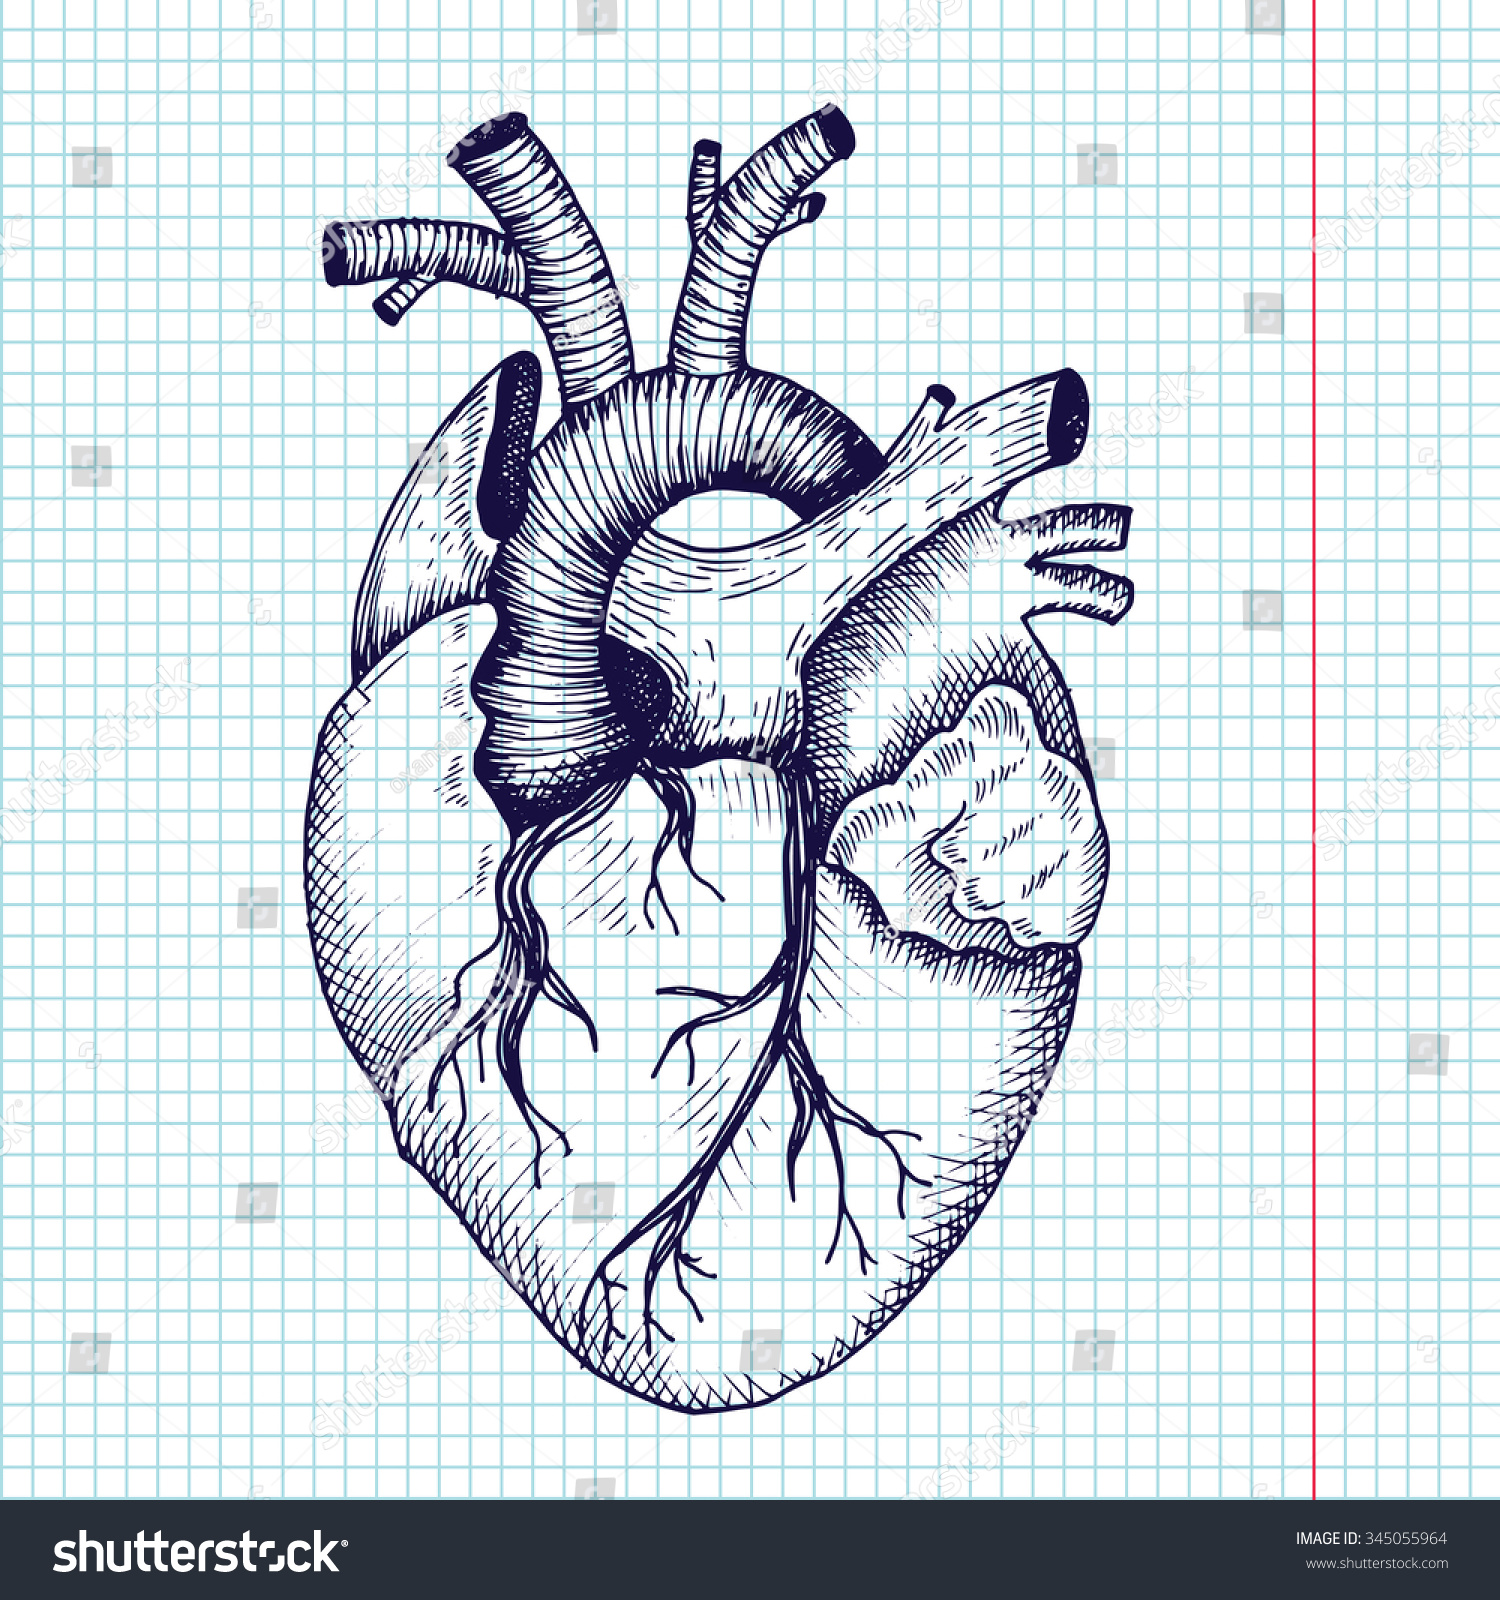 Anatomical Heart Vector Vintage Style Detailed Stock Vector